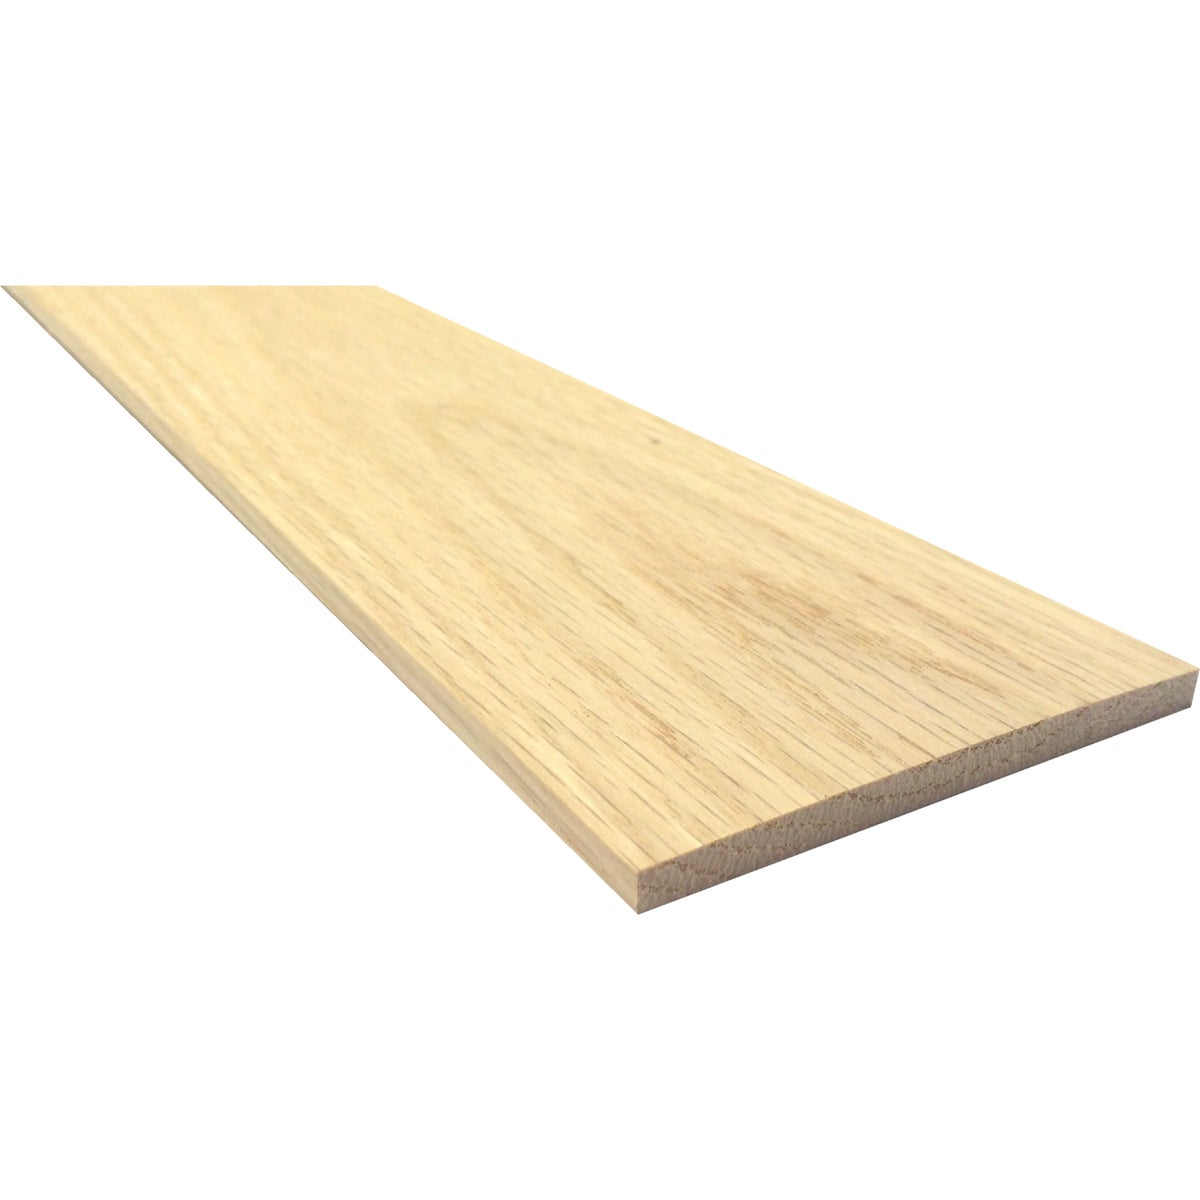 "1/4X6""X2' OAK BOARD - PB19509 by Waddell Mfg Company"